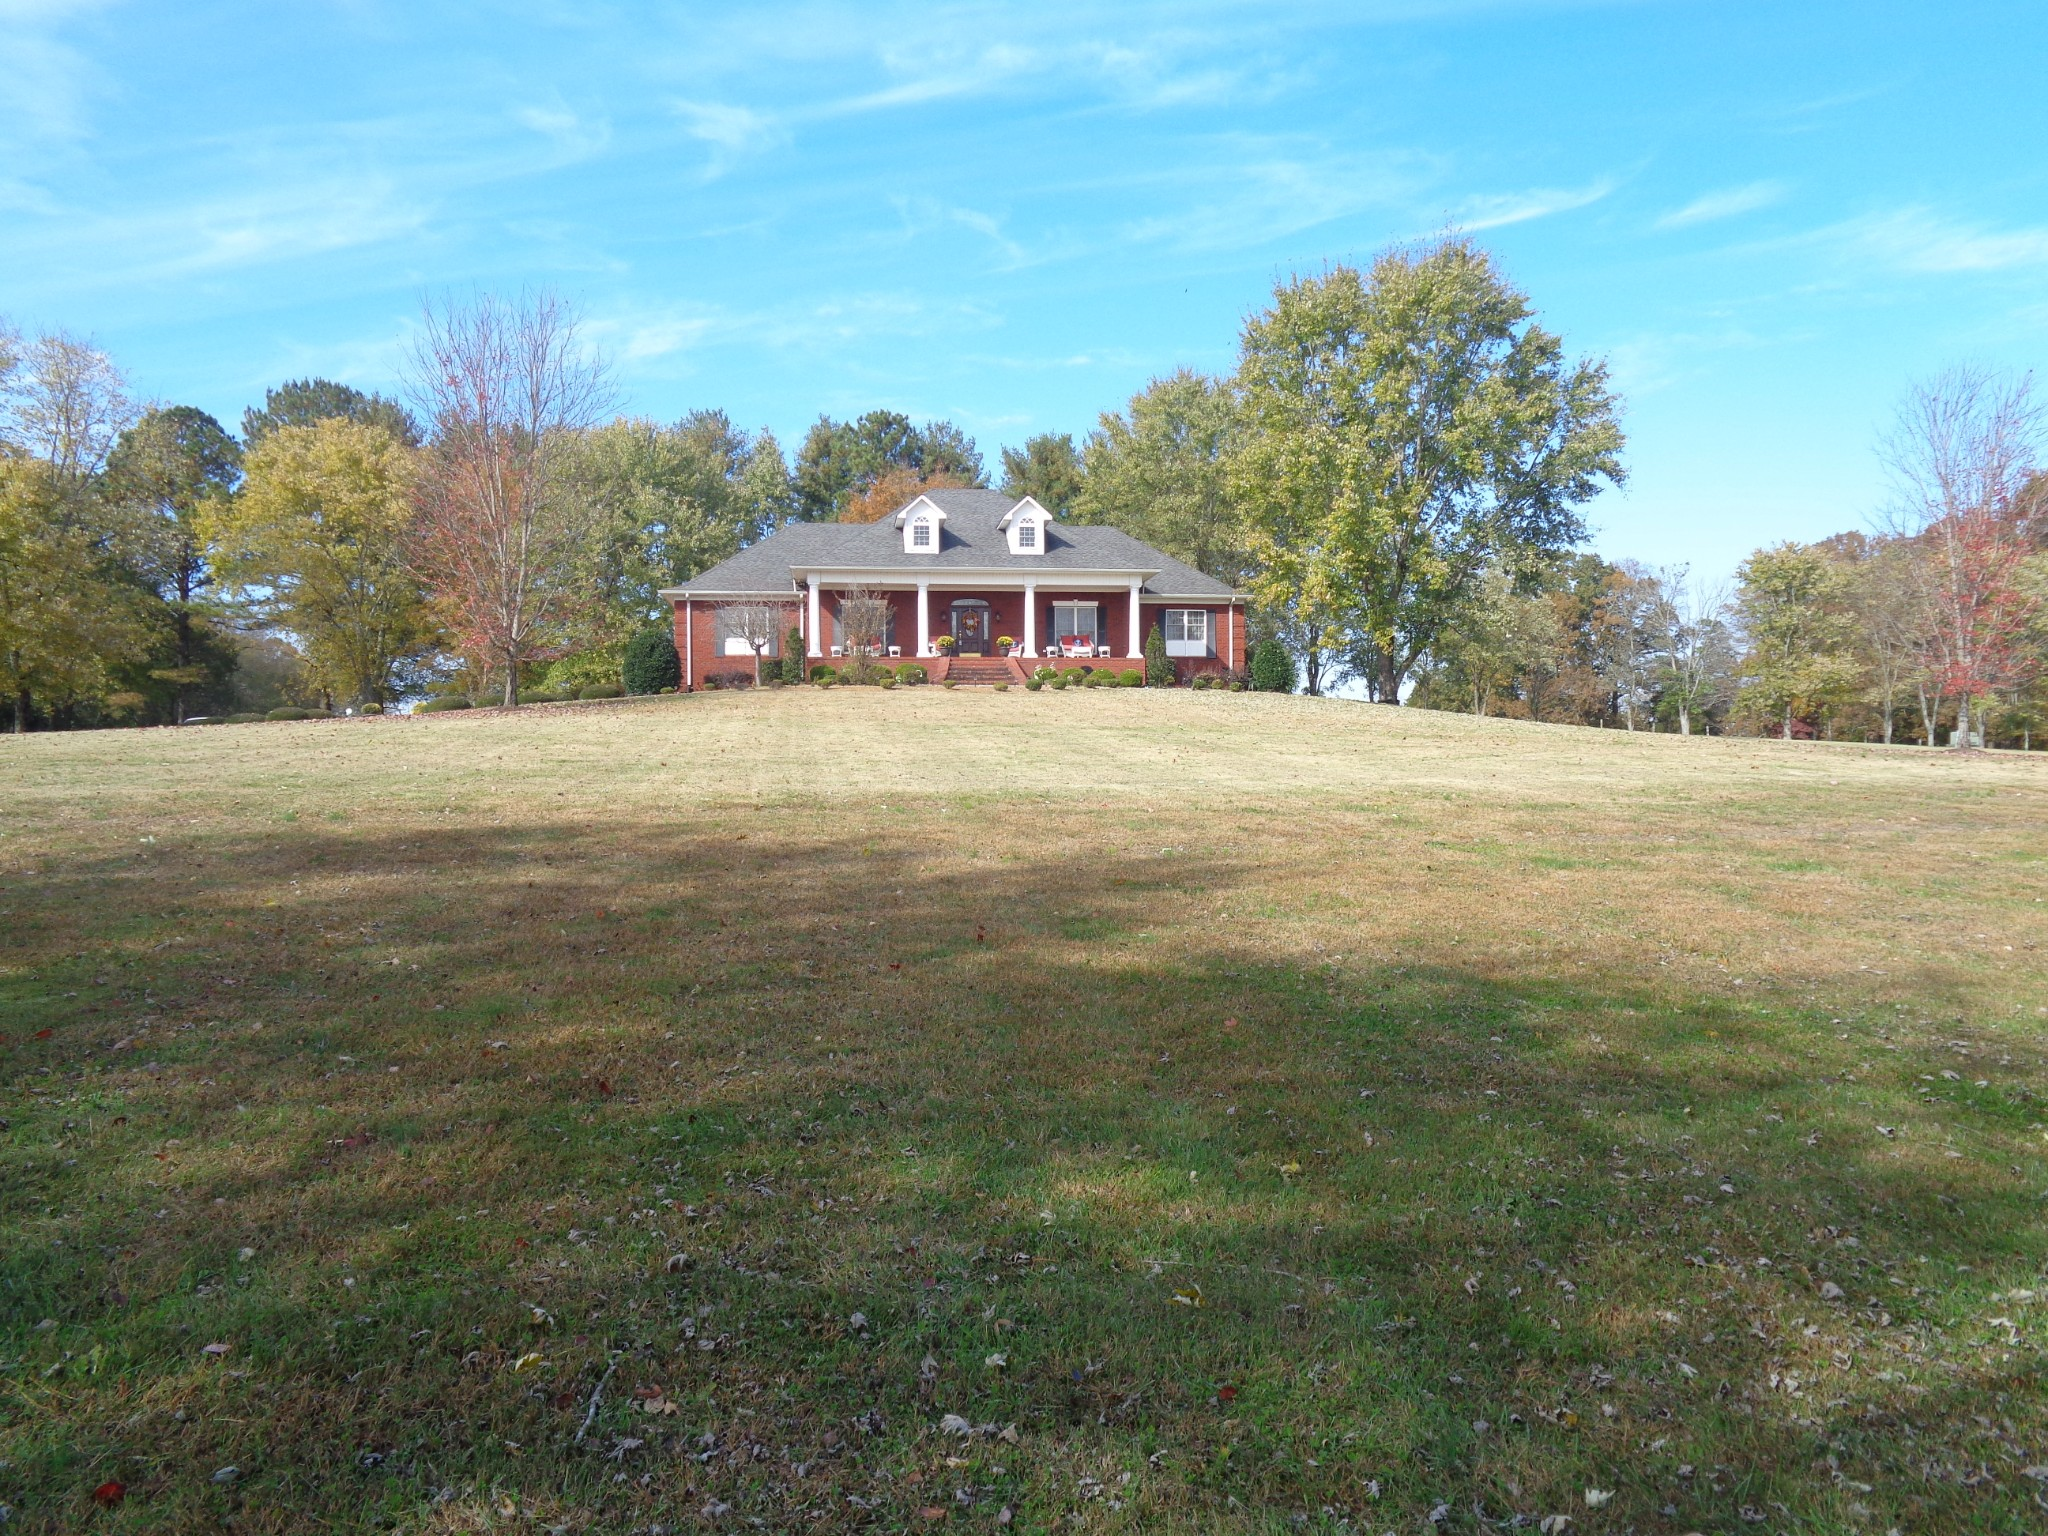 196 Walden Rd, Lawrenceburg, TN 38464 - Lawrenceburg, TN real estate listing